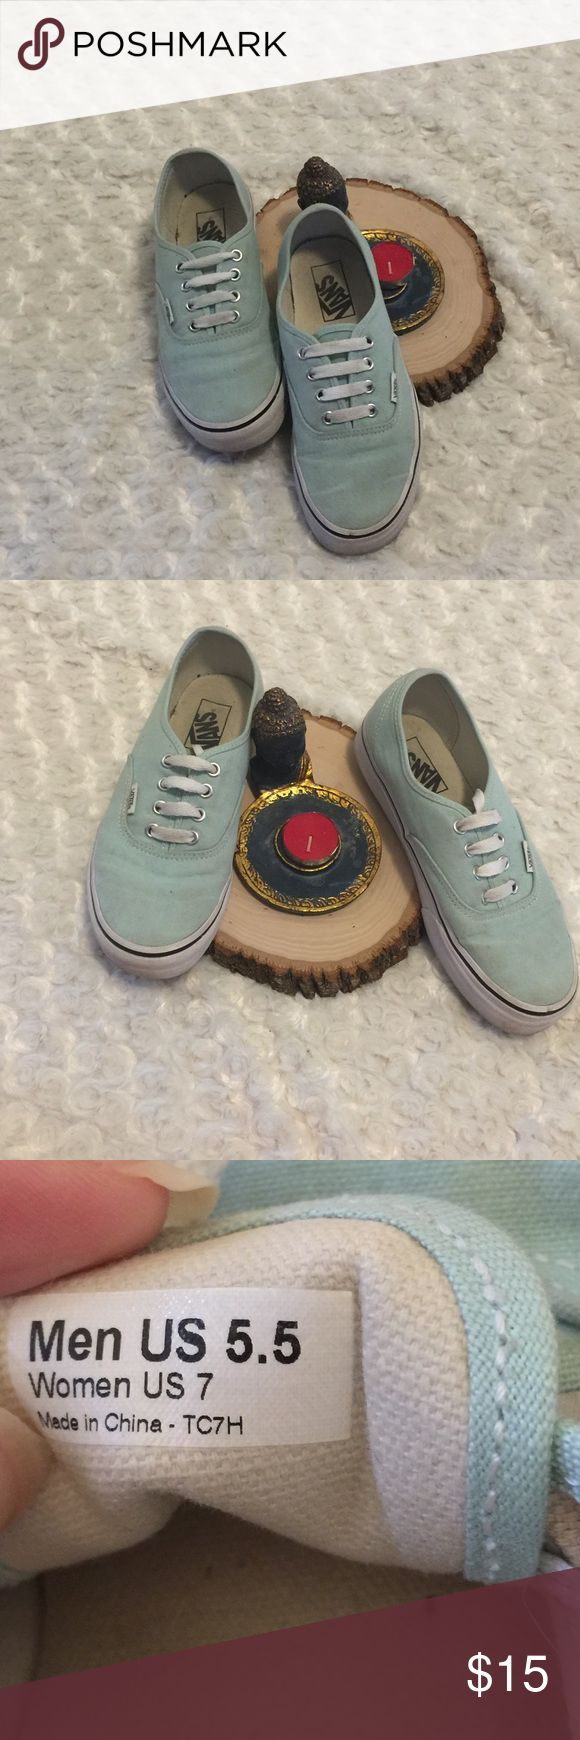 Vans Lace Up Sneakers 👟 Size 7 These super cute shoes are pre-owned and gently used with some wear (please see photos). Size: 7 in women's. Color: mint. Vans Shoes Sneakers